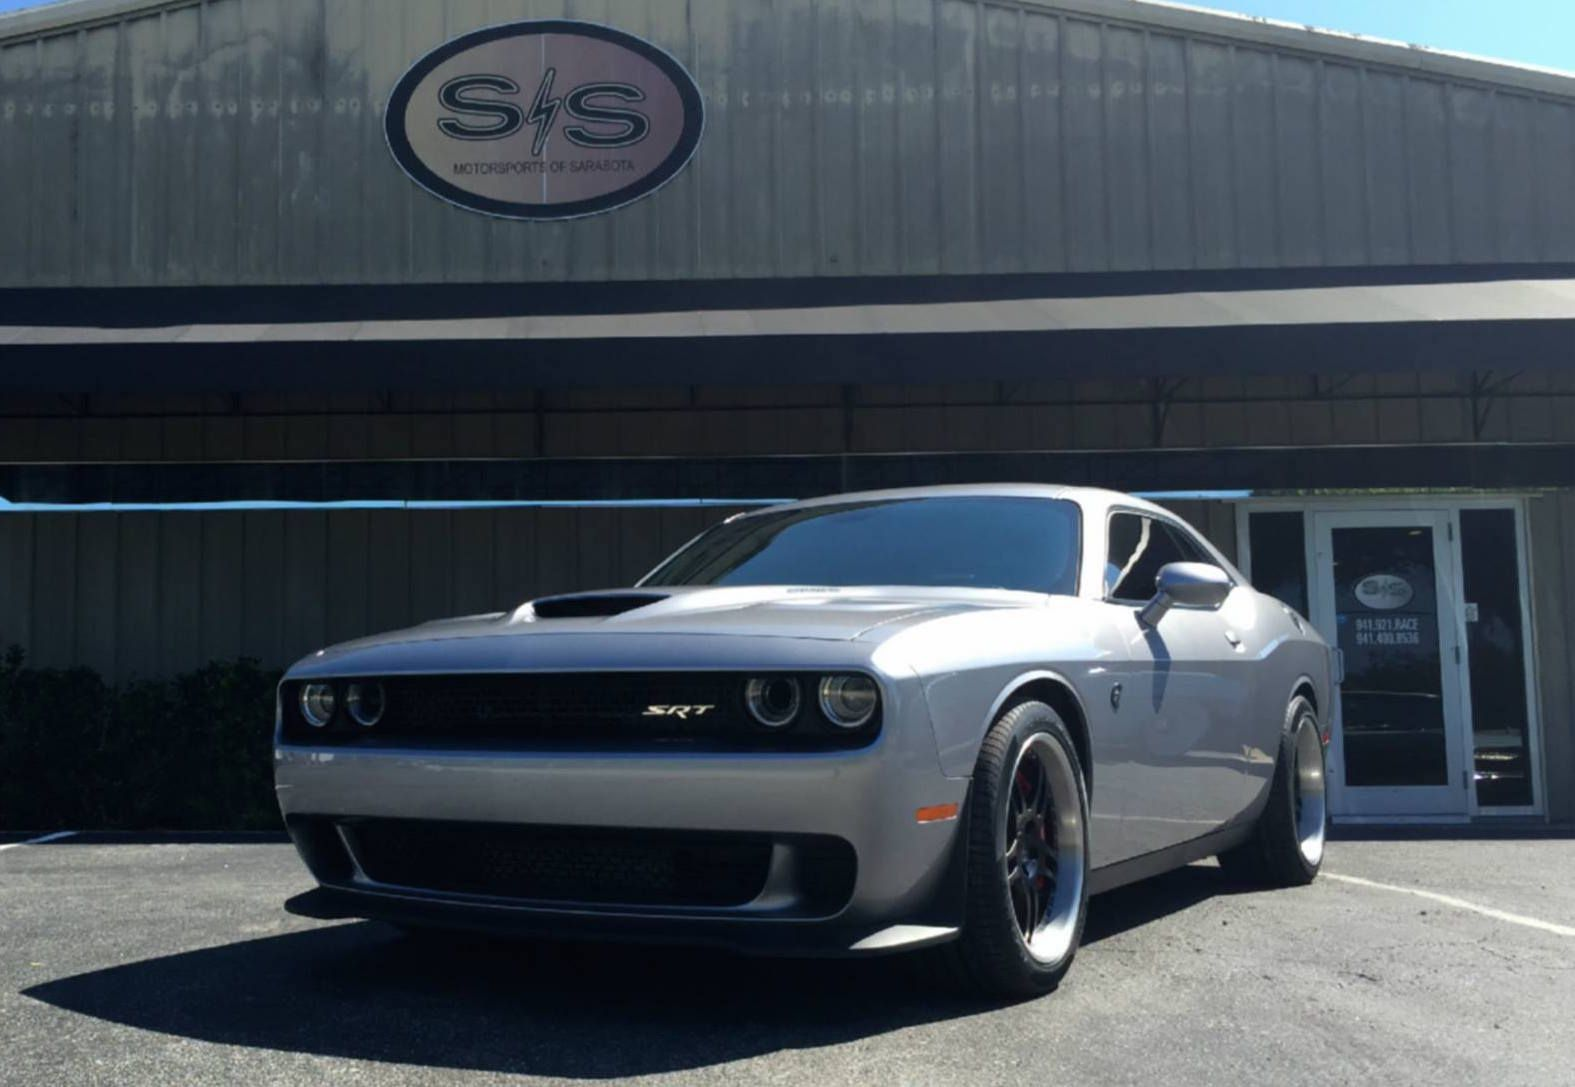 The team at s s motorsports equipped john s 2015 dodge challenger srt hellcat with pirelli p zero